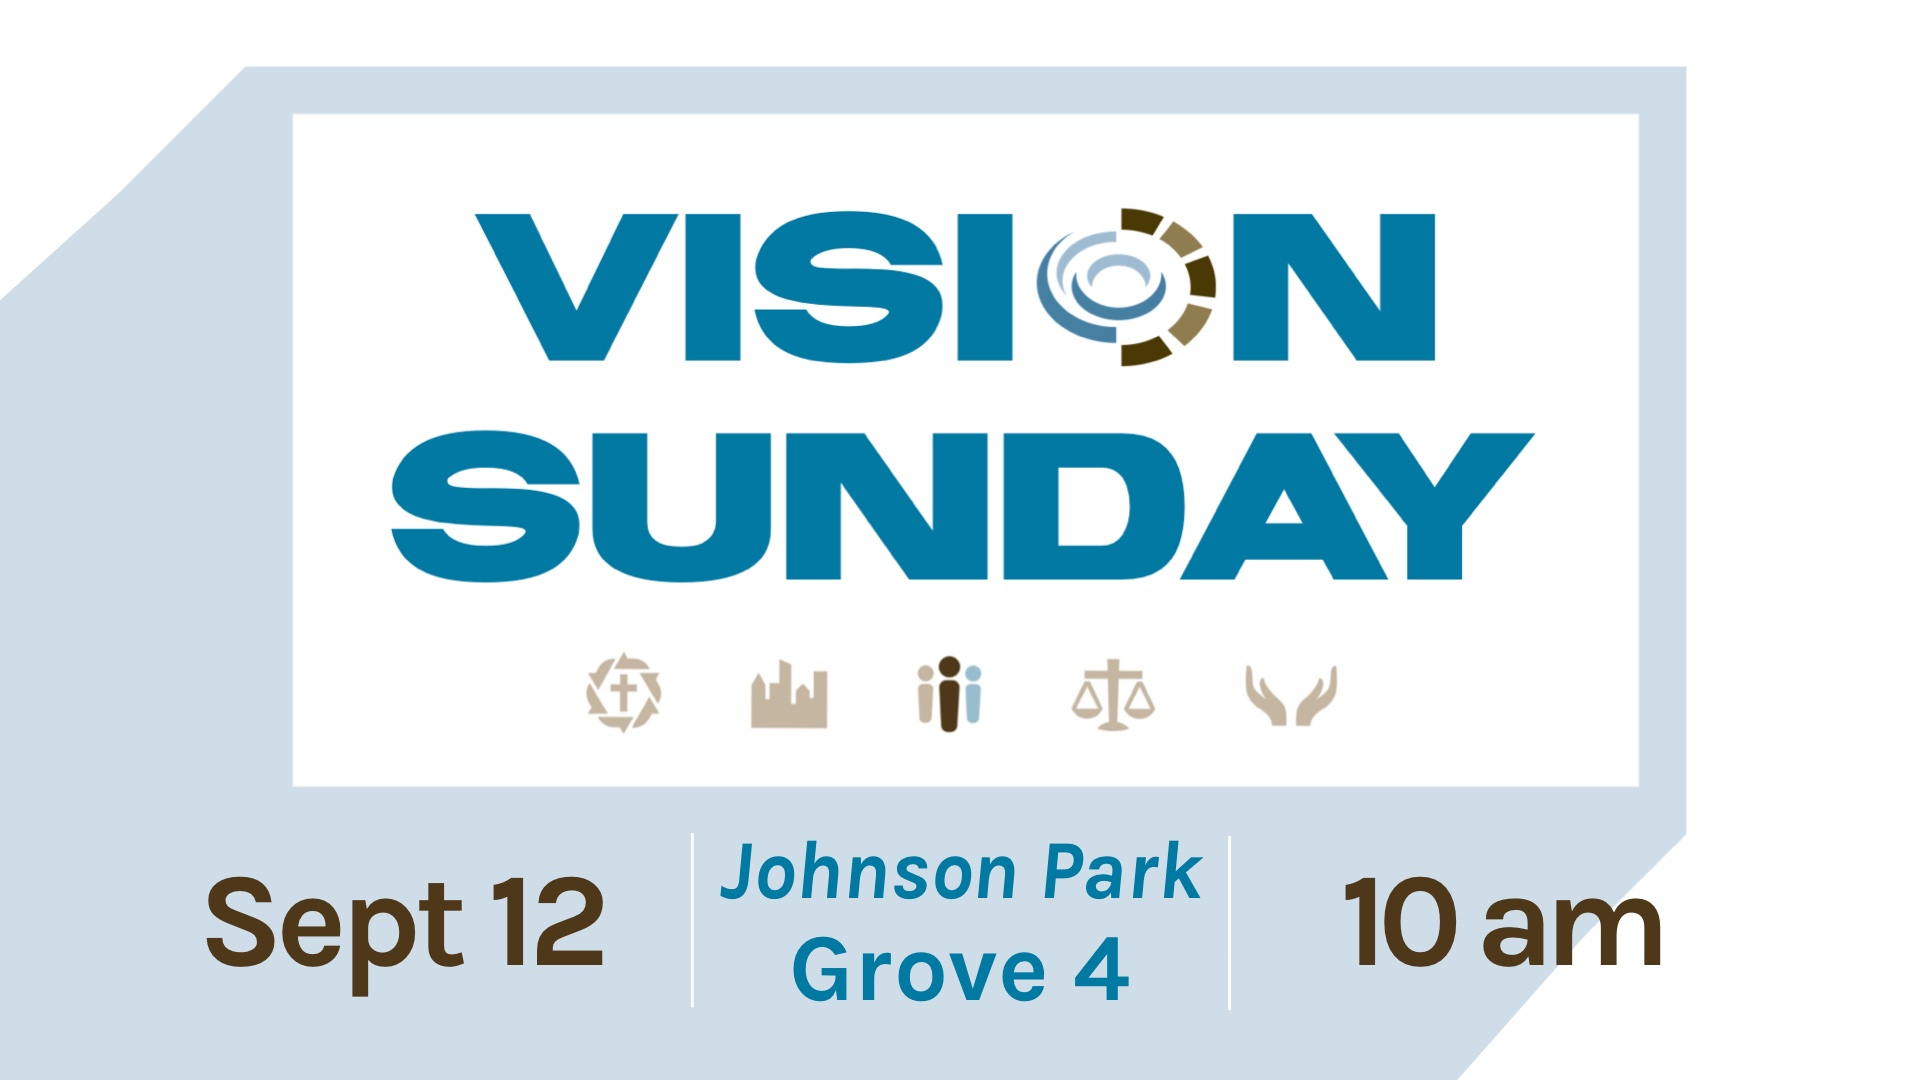 Vision Sunday - GS size - Sept 12 2021 image